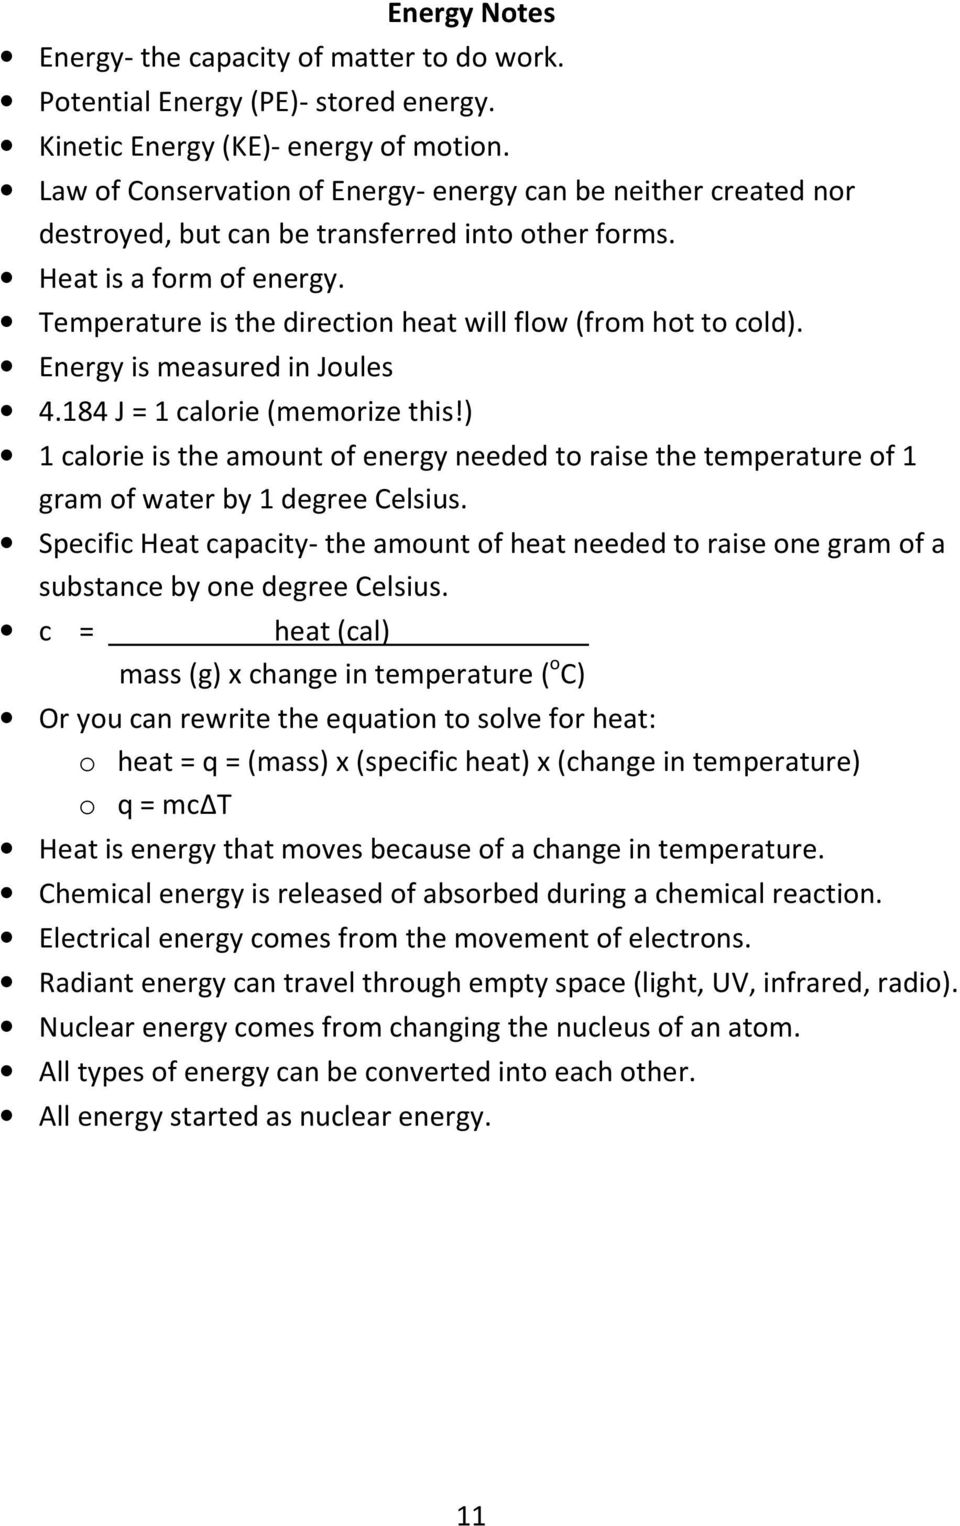 Temperature is the direction heat will flow (from hot to cold). Energy is measured in Joules 4.184 J = 1 calorie (memorize this!